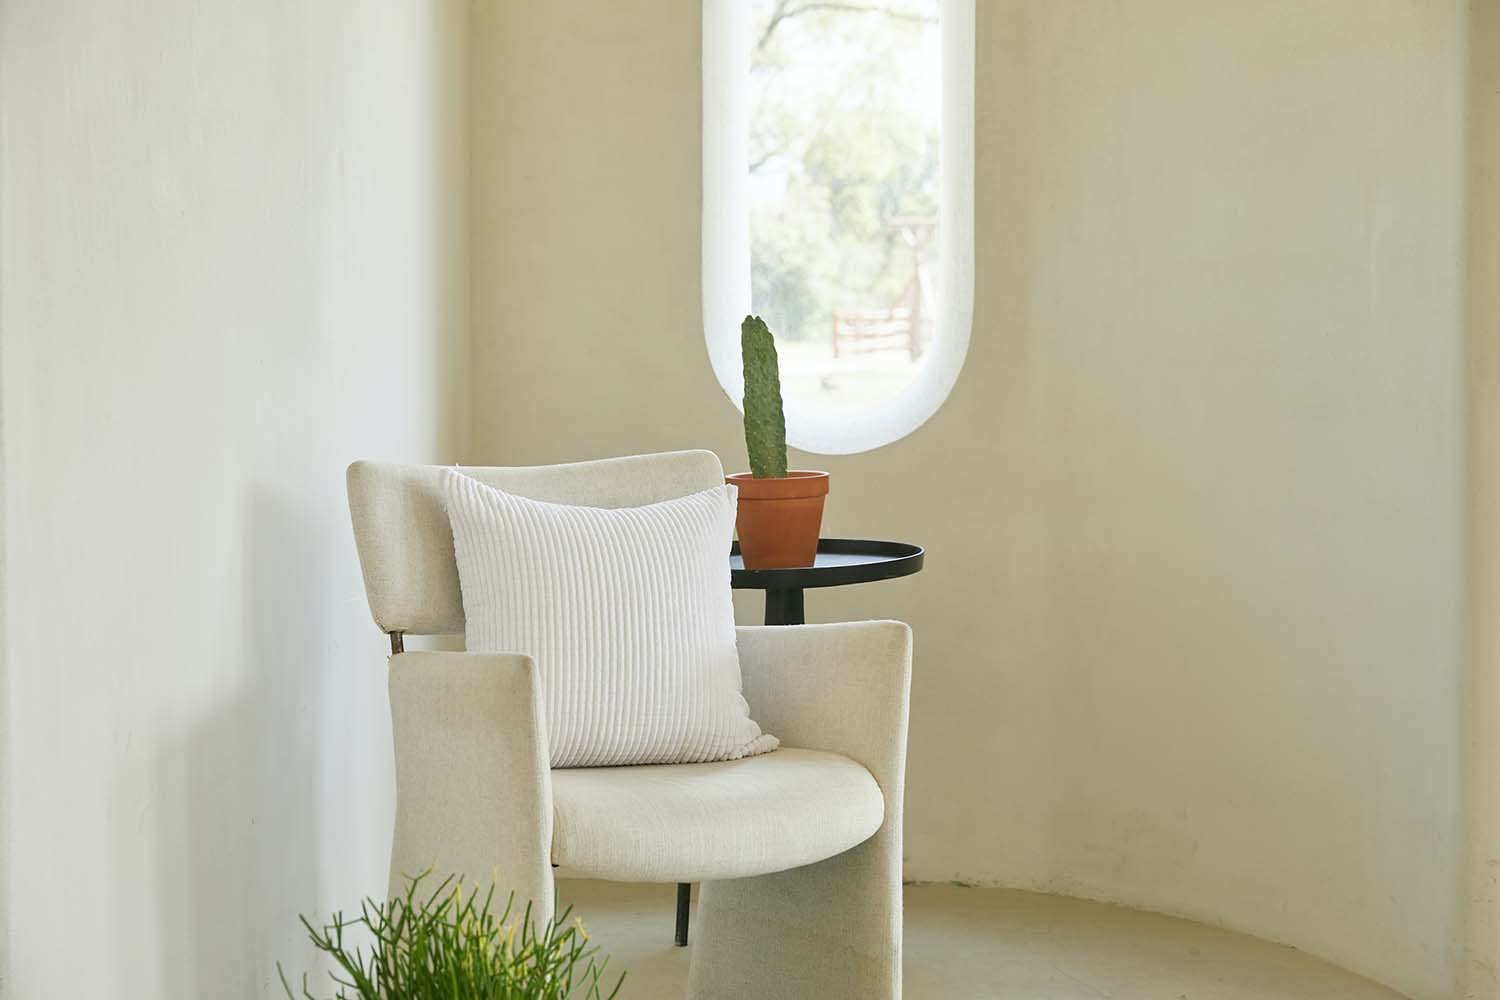 Styling Your Home With an Accent Chair